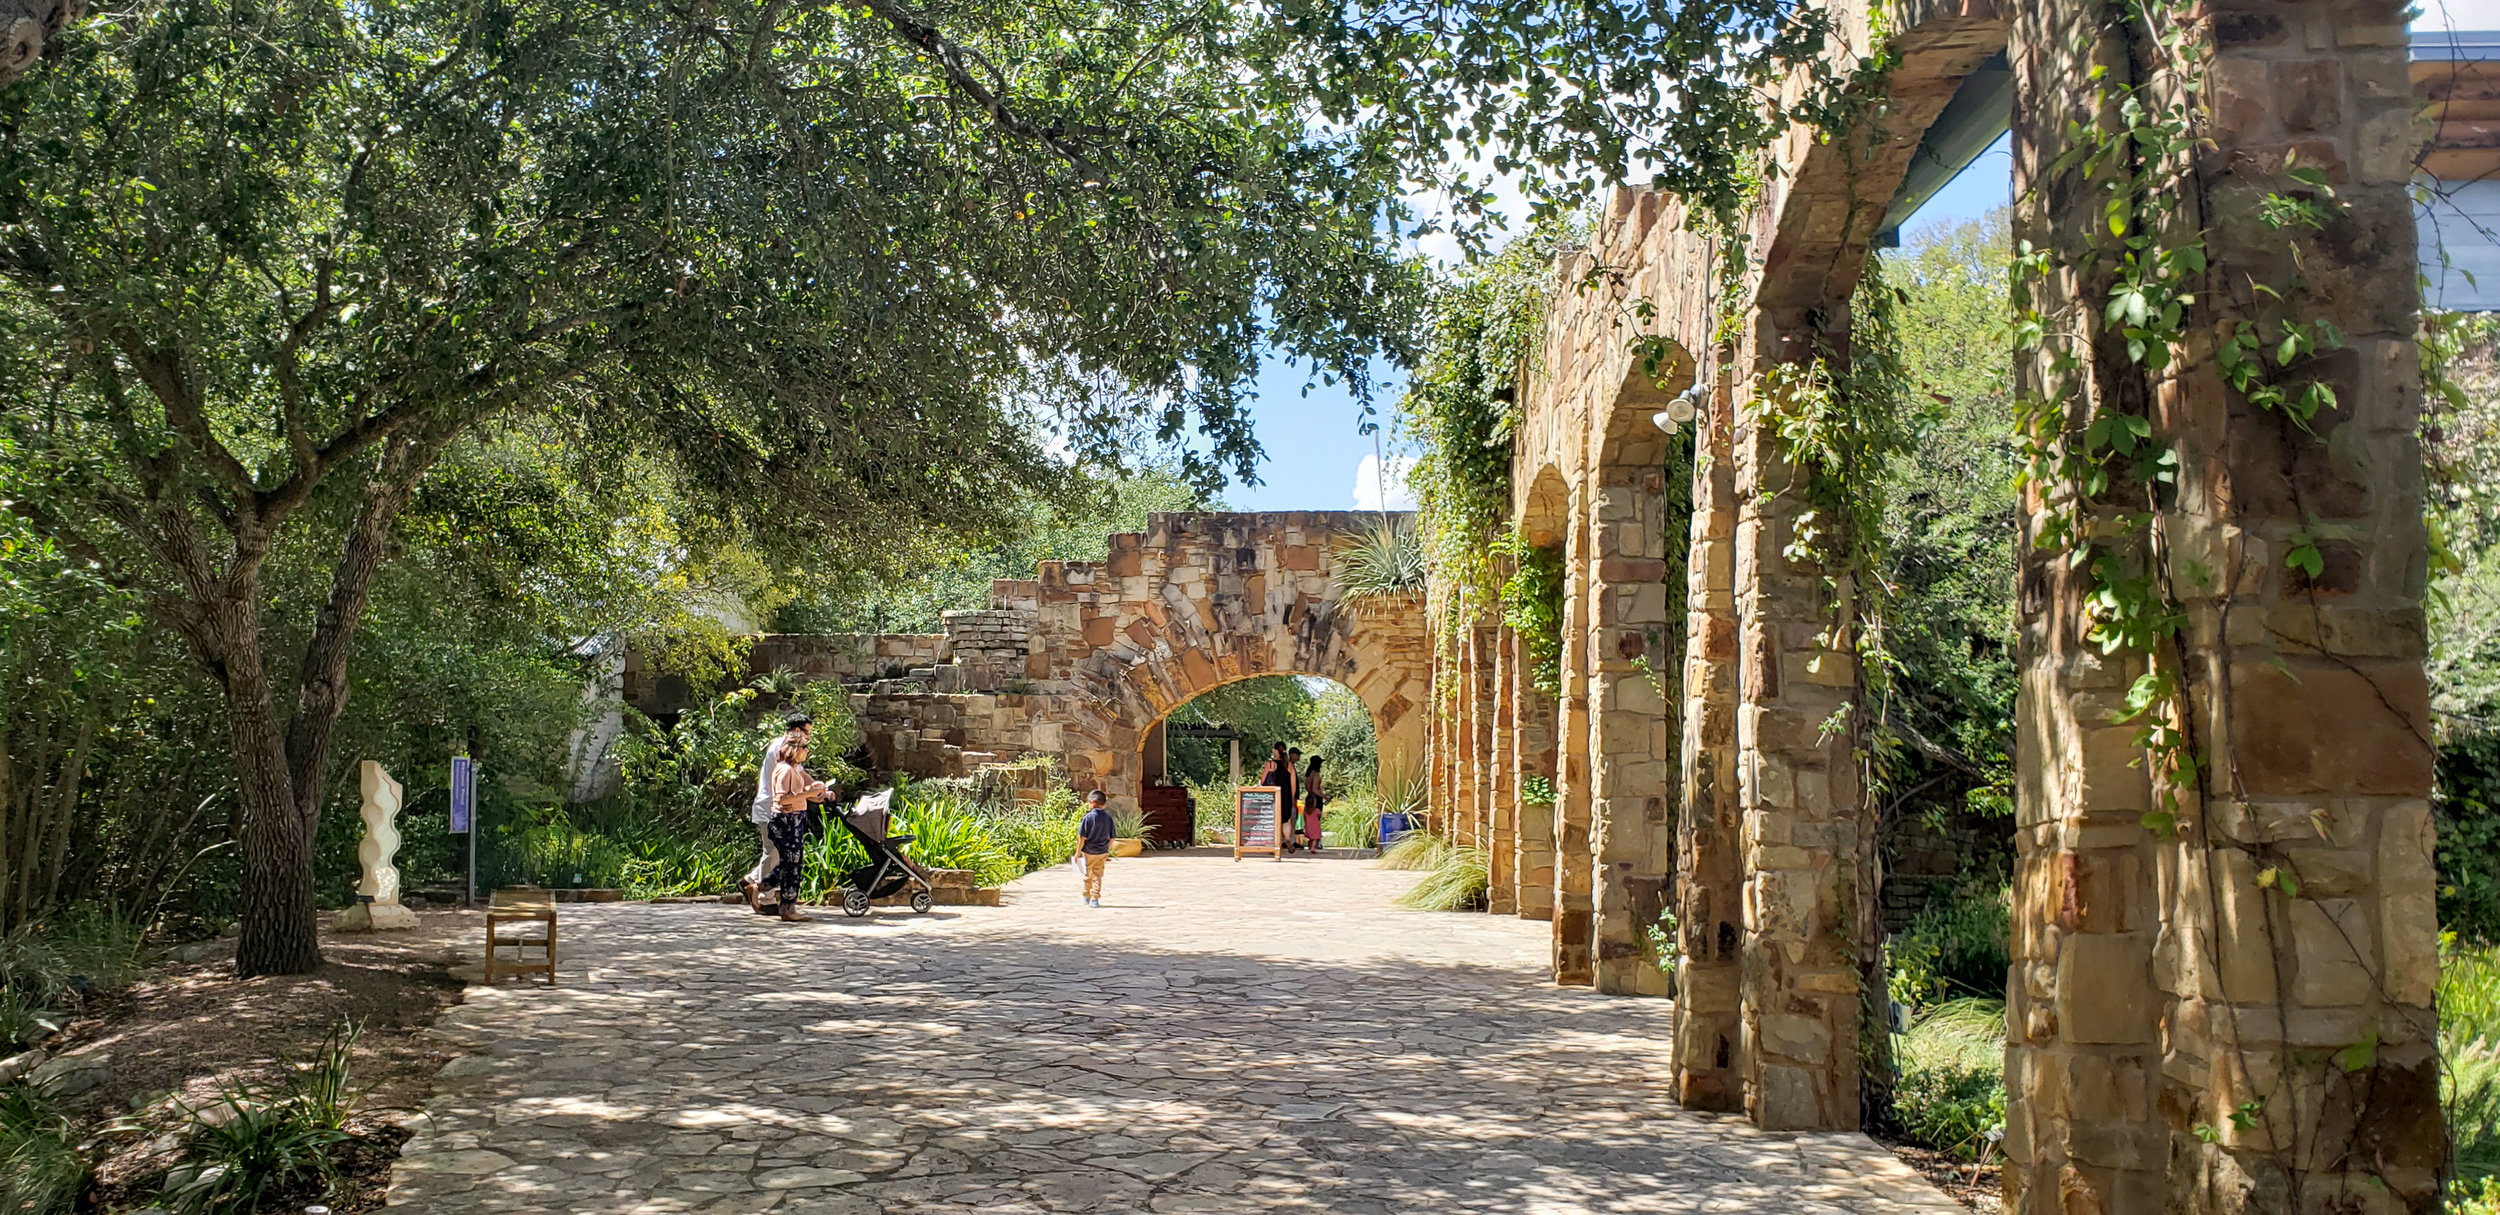 The lady bird johnson wildflower center is a gorgeous educational center dedicated to the preservation of central texas's unique flora and botanical ecosystems.